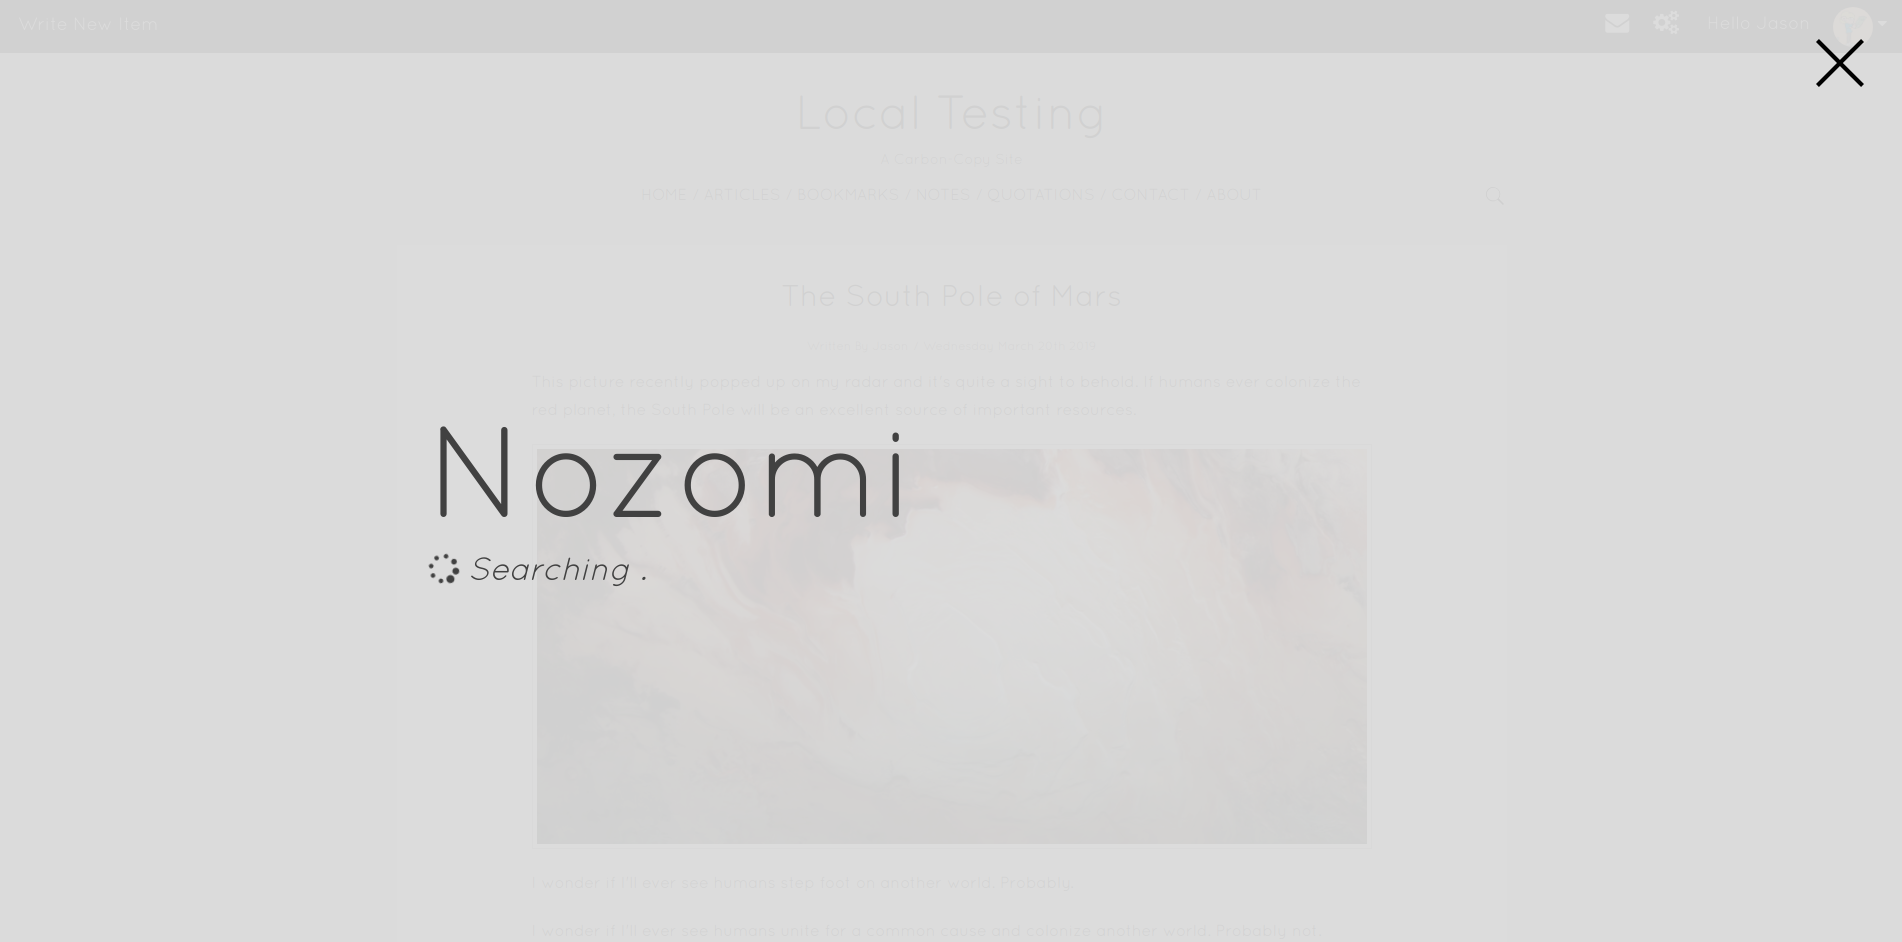 001 - Search For Nozomi